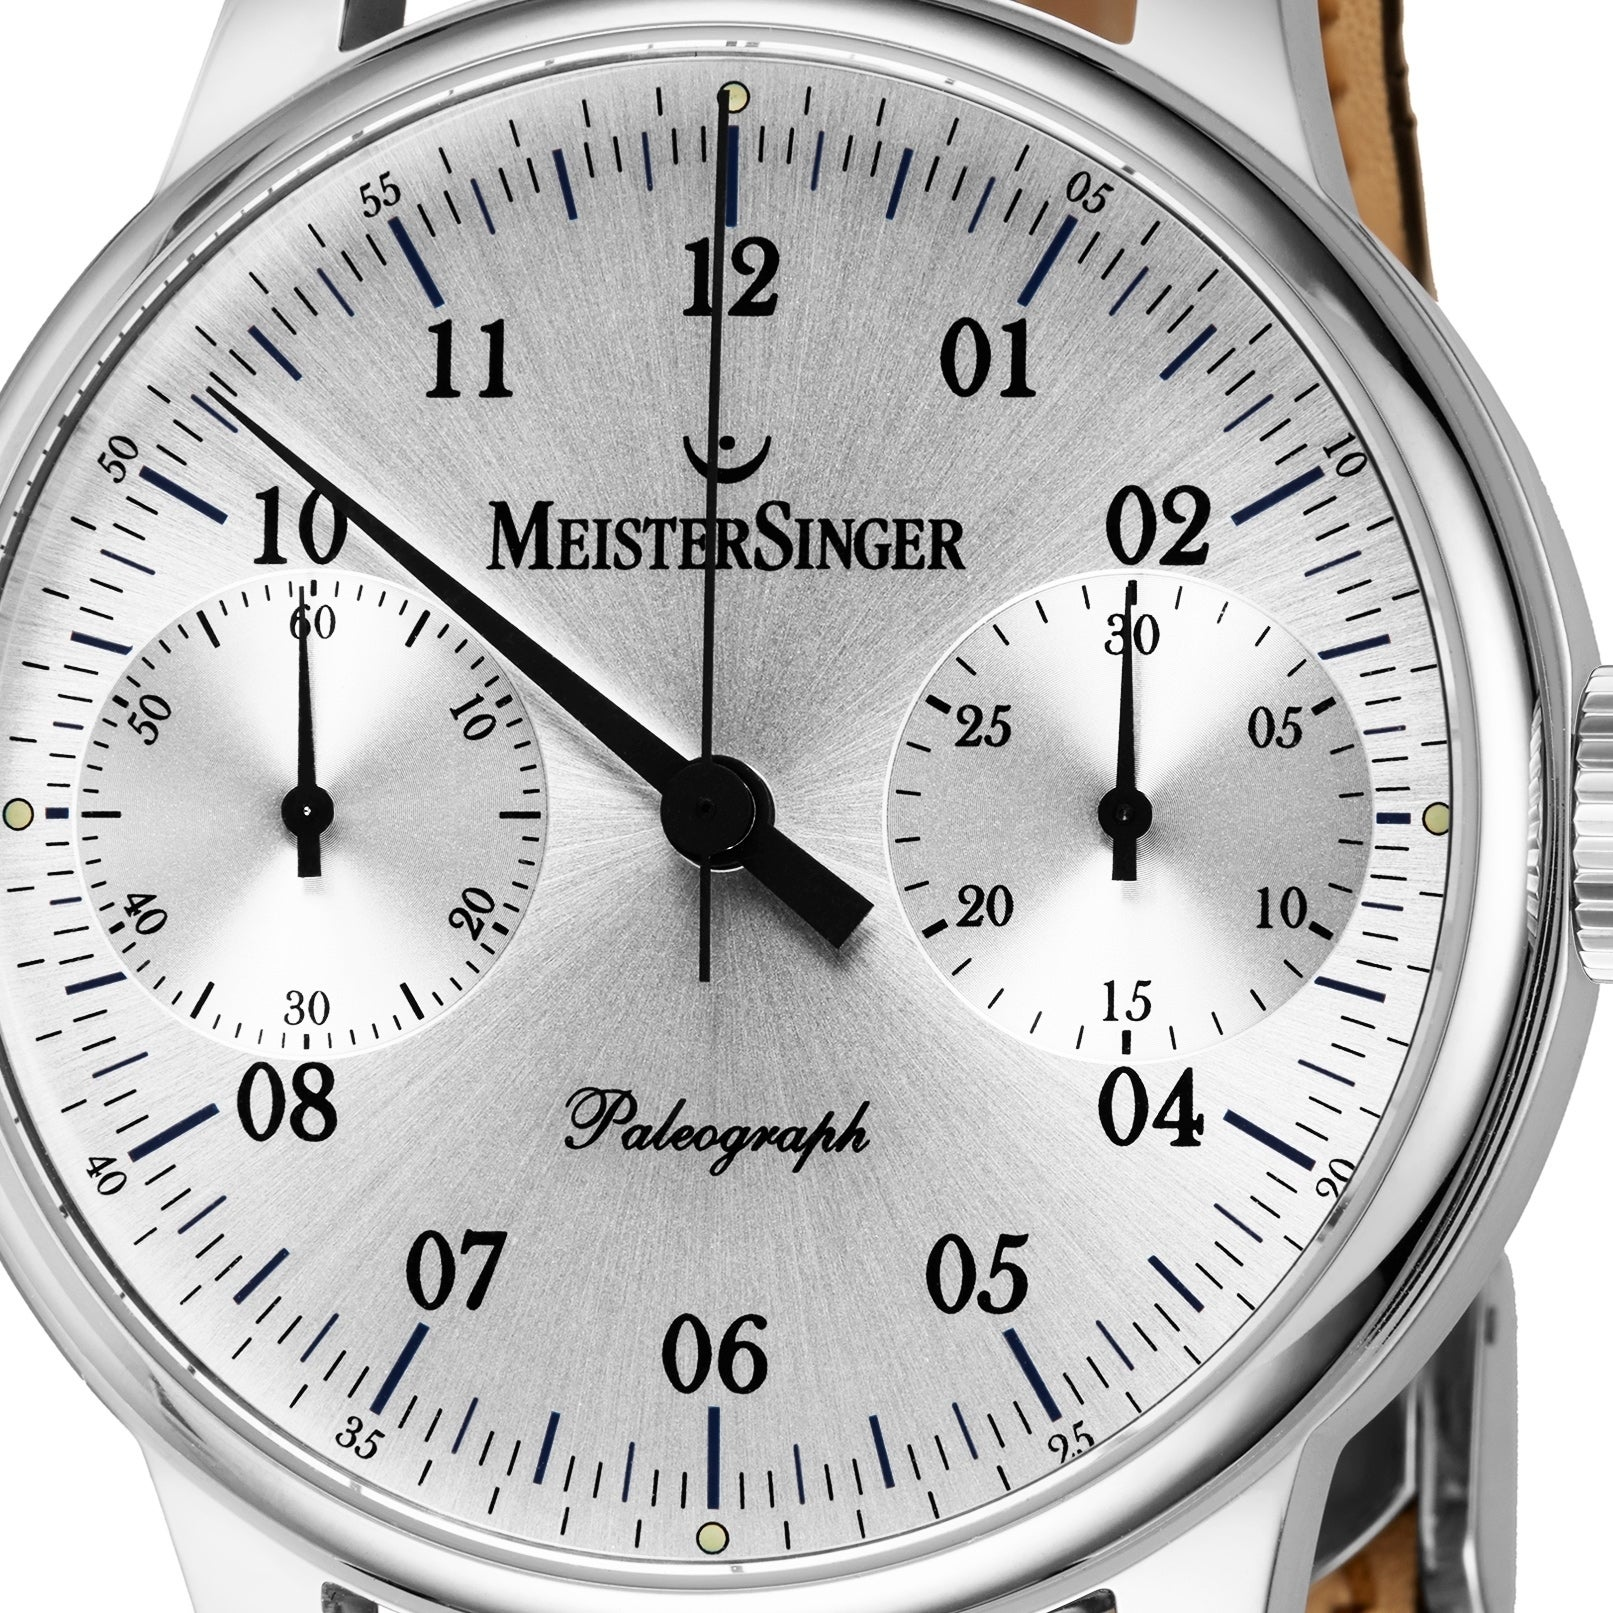 0809a75e2 Shop MeisterSinger Men's ED-SC101 'Paleograph' Silver Dial Black Leather  Strap Chronograph Automatic Watch - Free Shipping Today - Overstock -  24183790